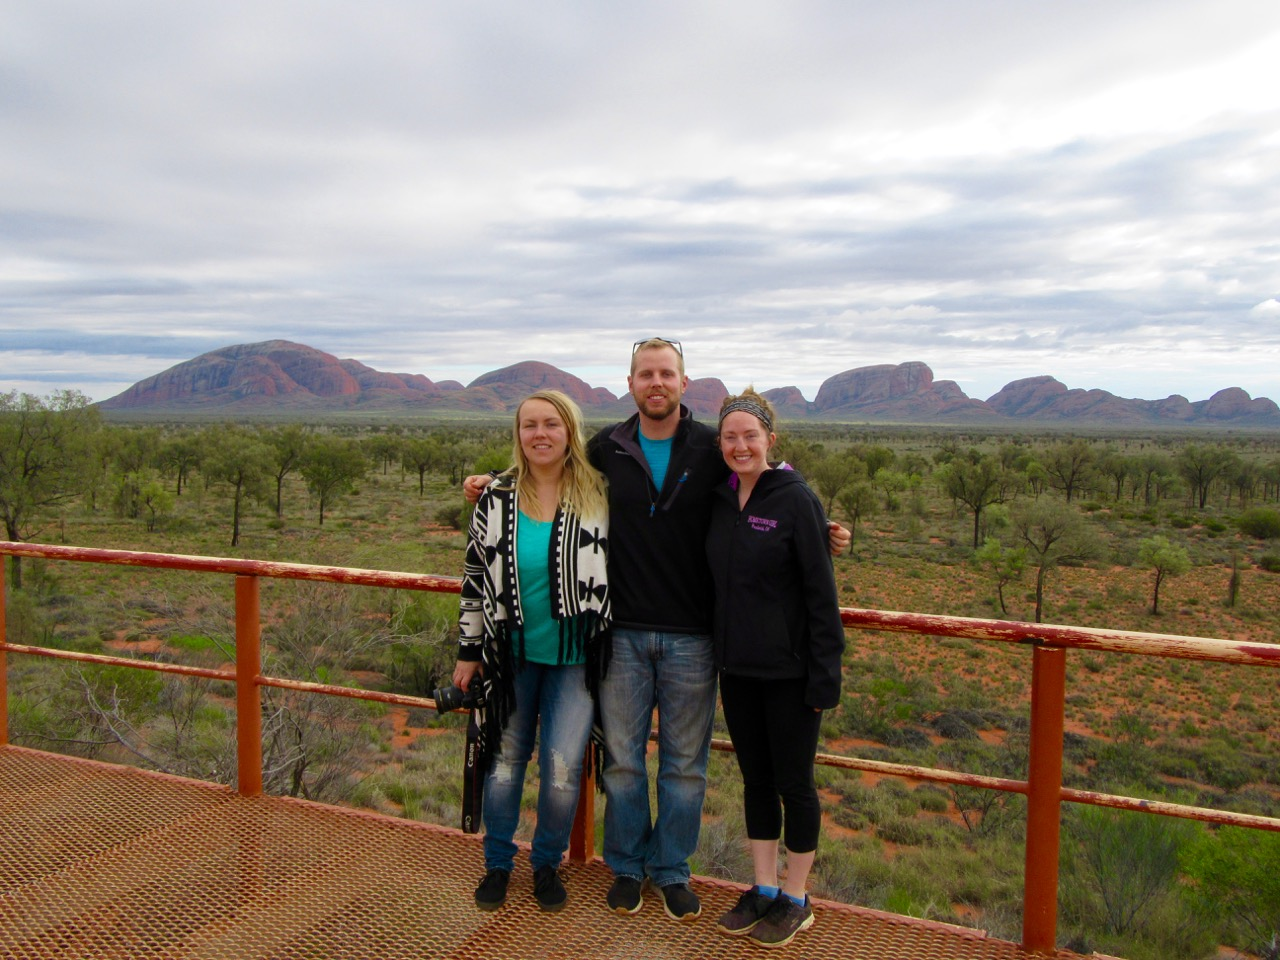 The terrific three in front of The Olgas.